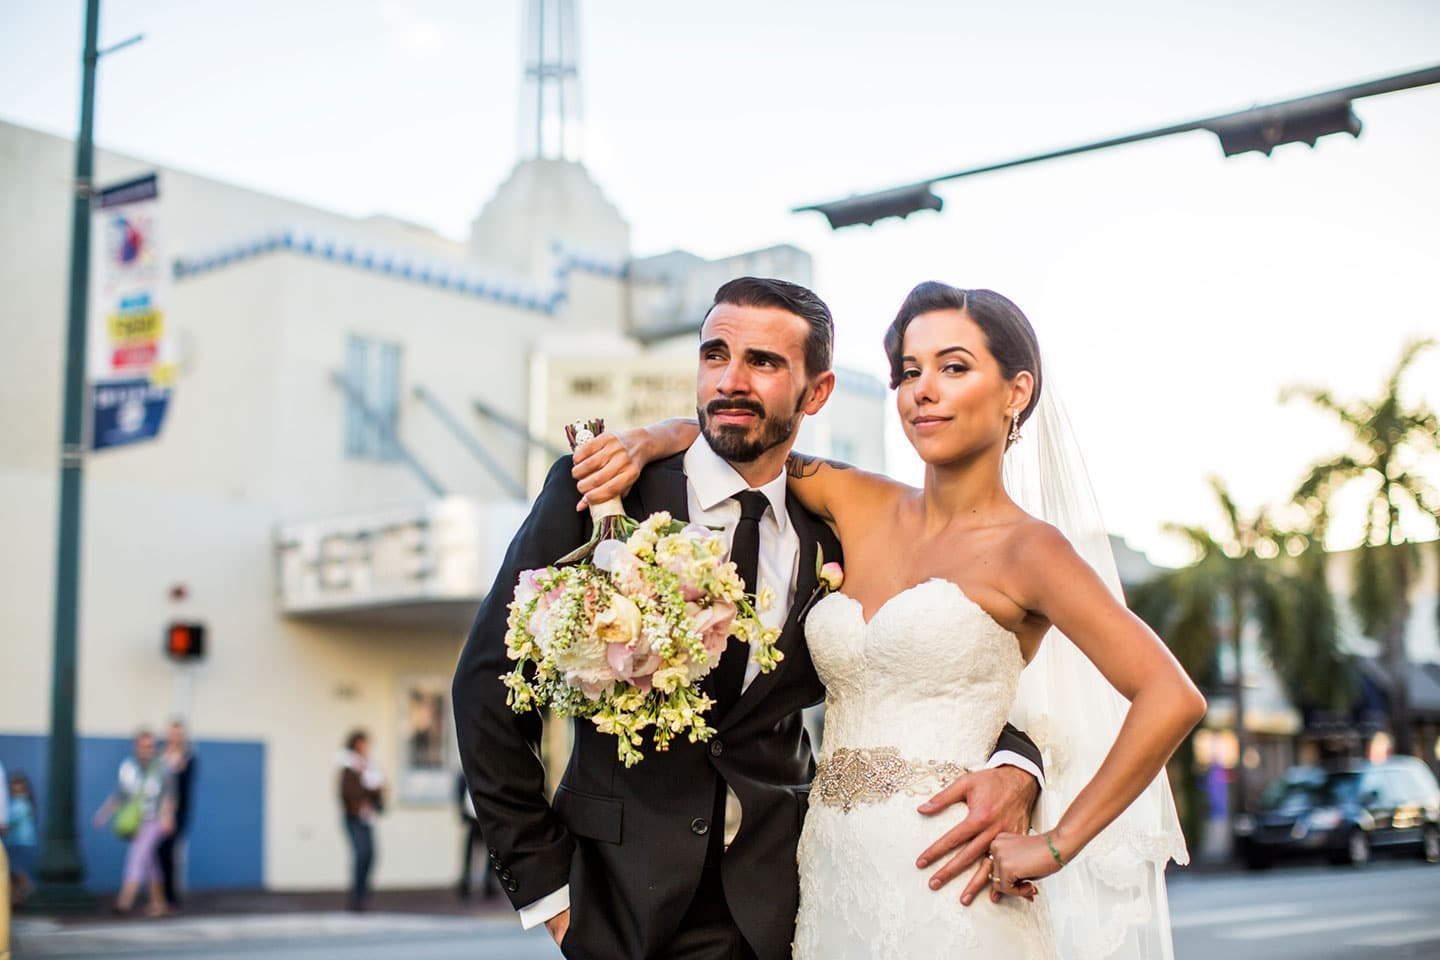 34-Miami-Little-Havana-wedding-photography